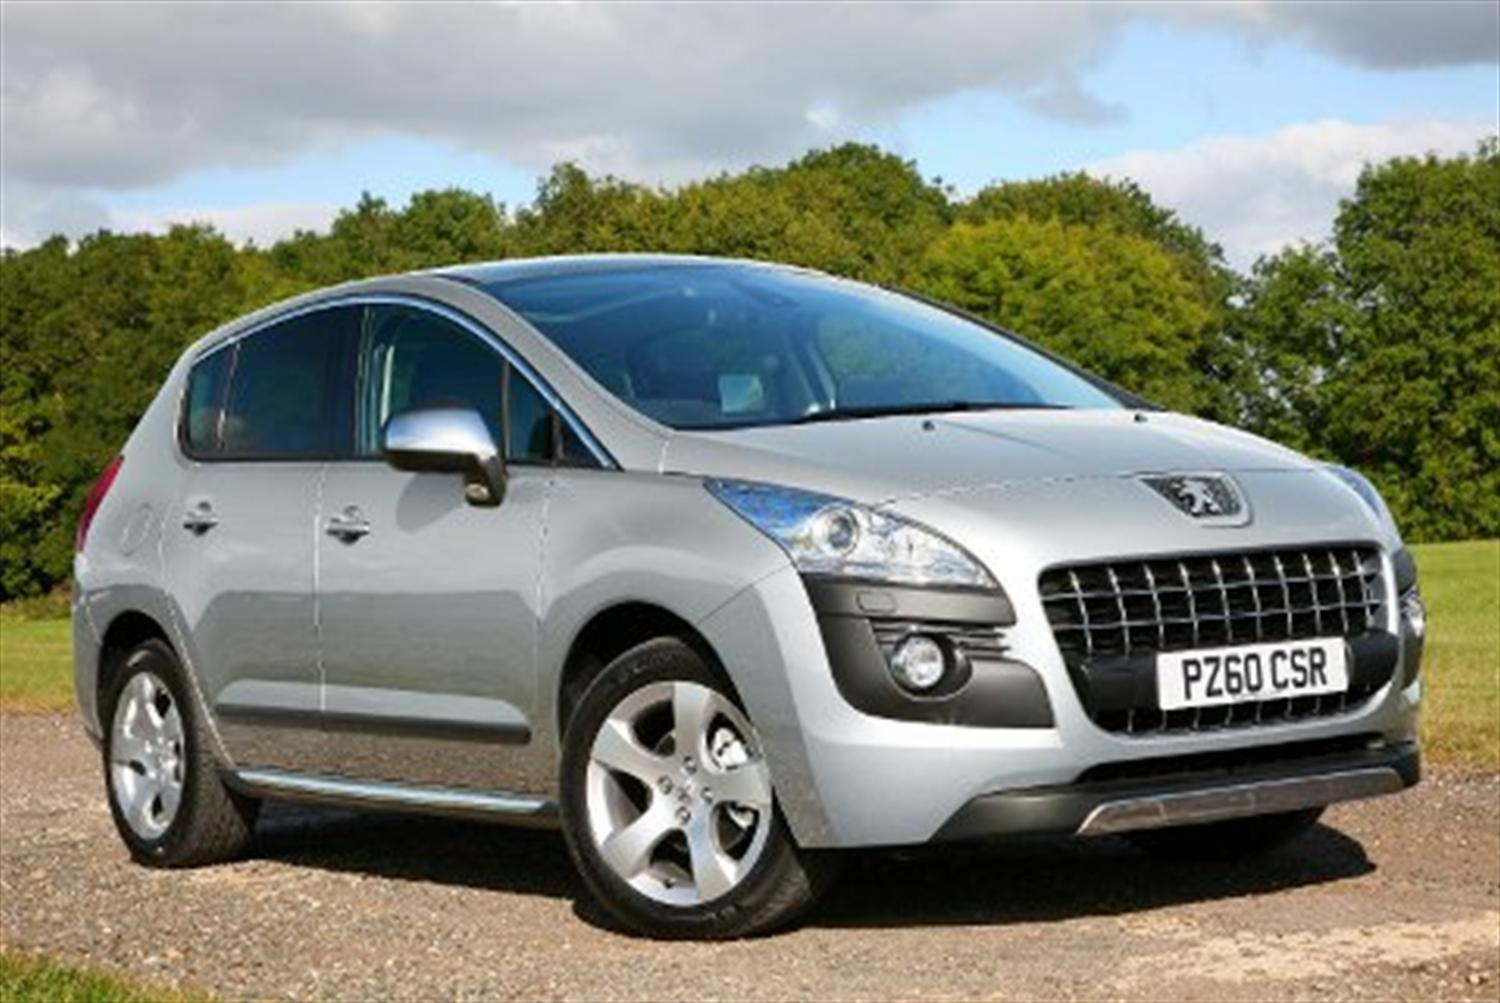 Peugeot 3008 Special Editions Revealed